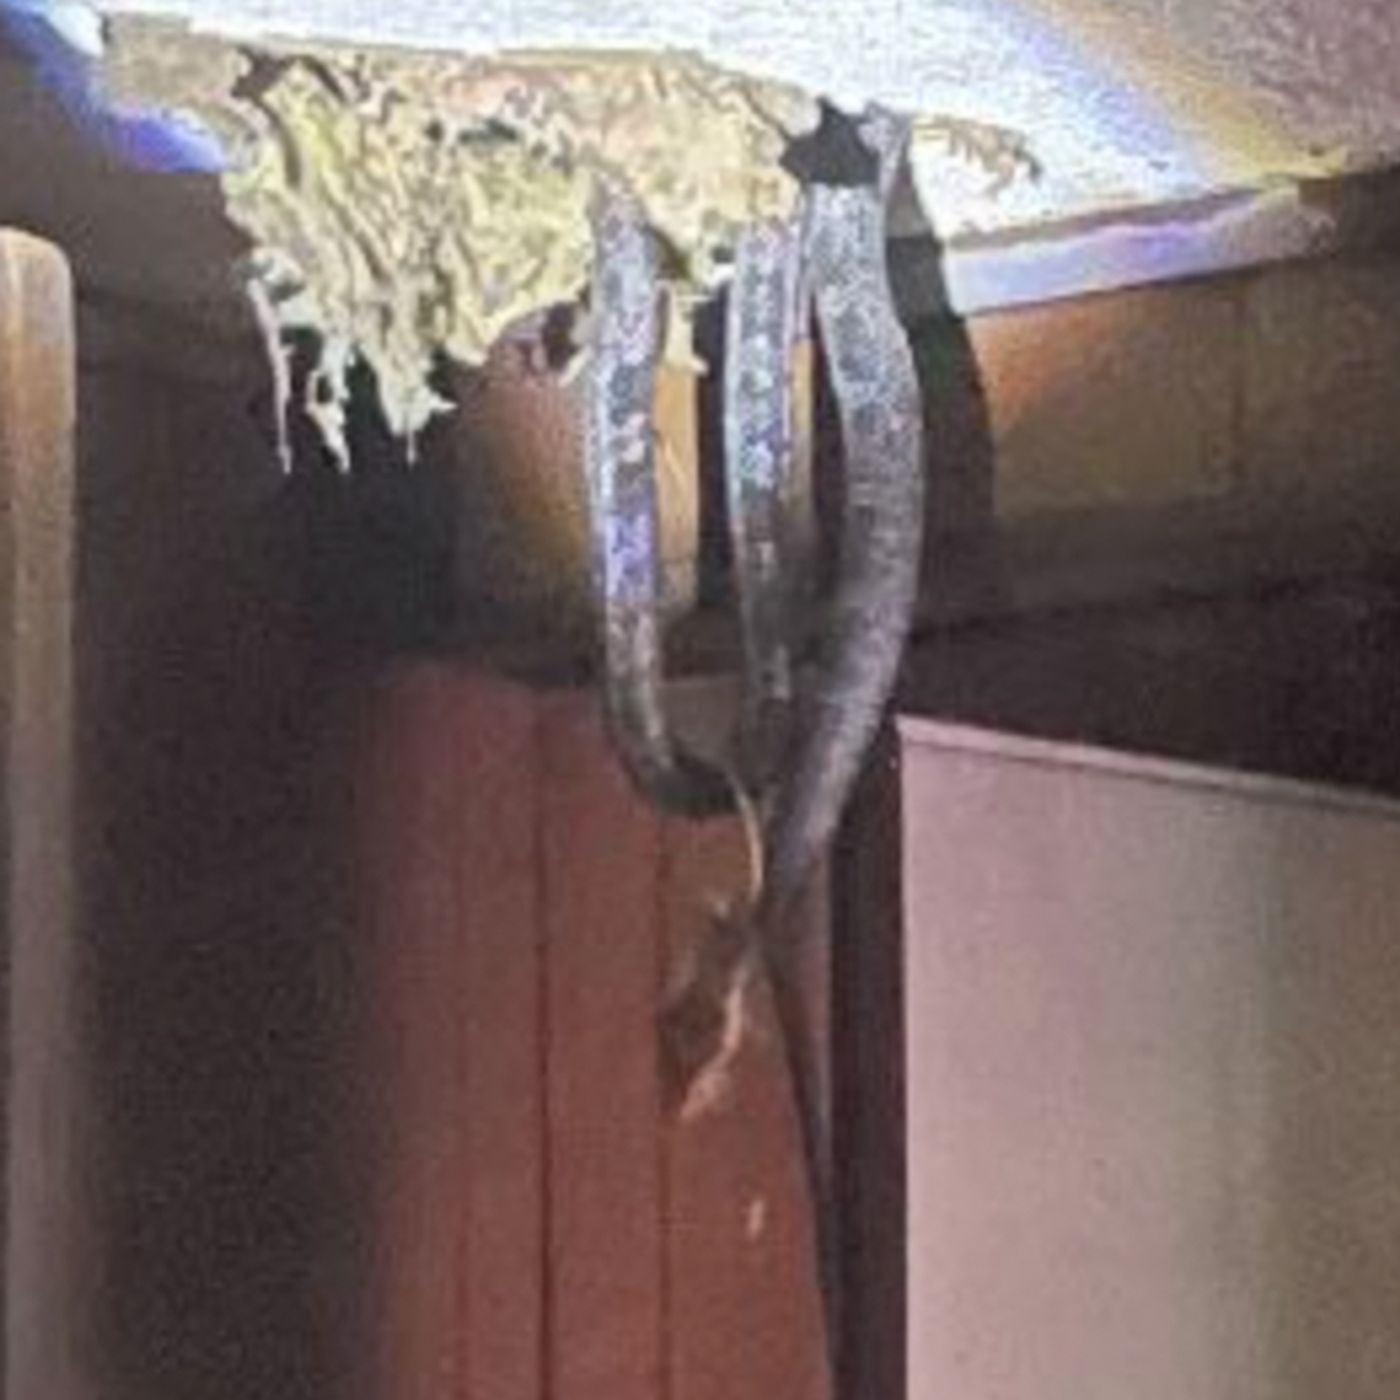 We talk to a family that had SNAKES fall through their ceiling